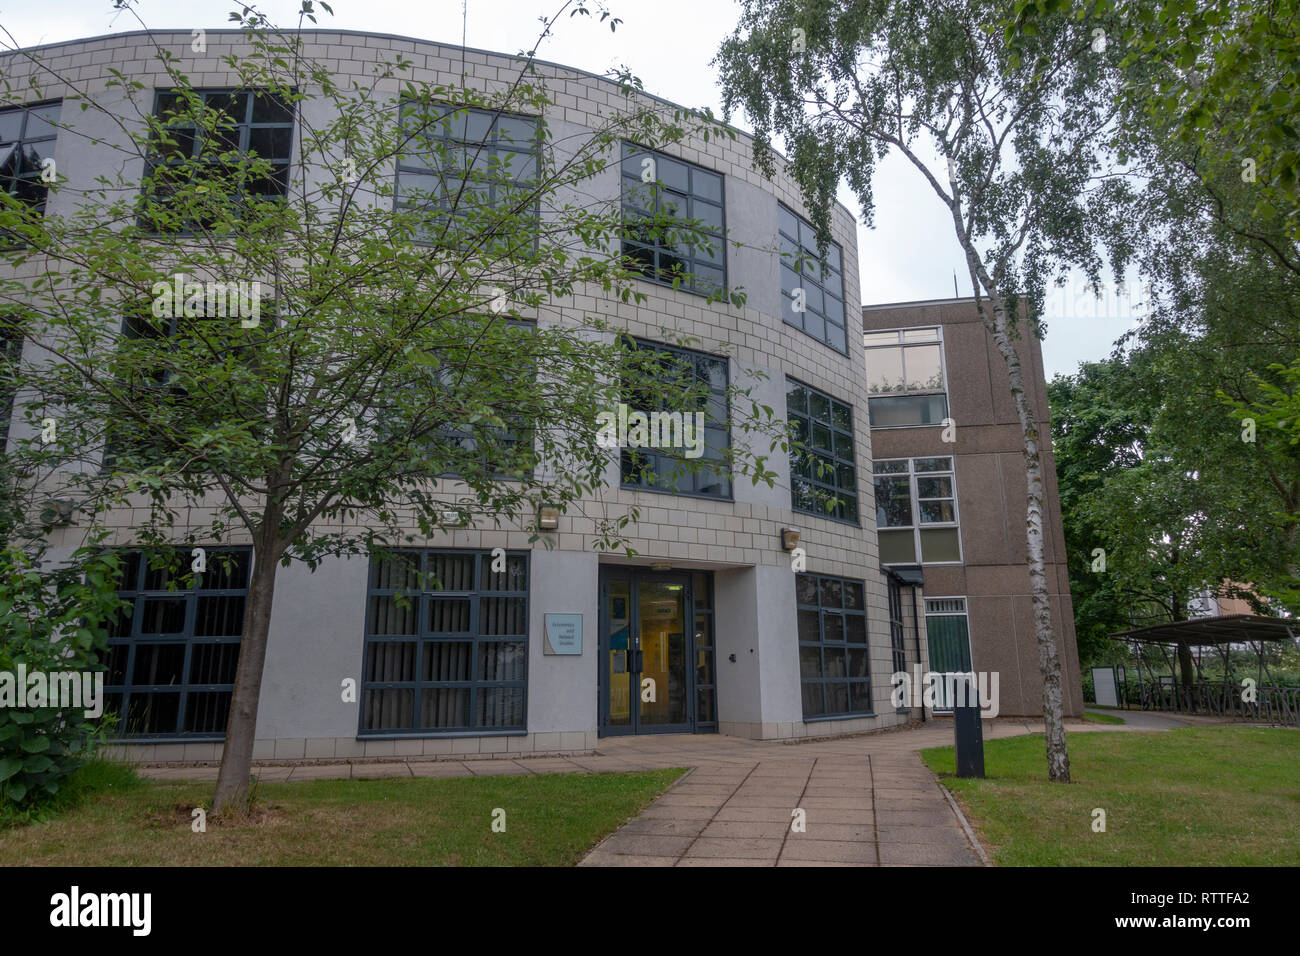 Economics and Related Studies, University of York campus, Heslington, York, Yorkshire, UK. - Stock Image